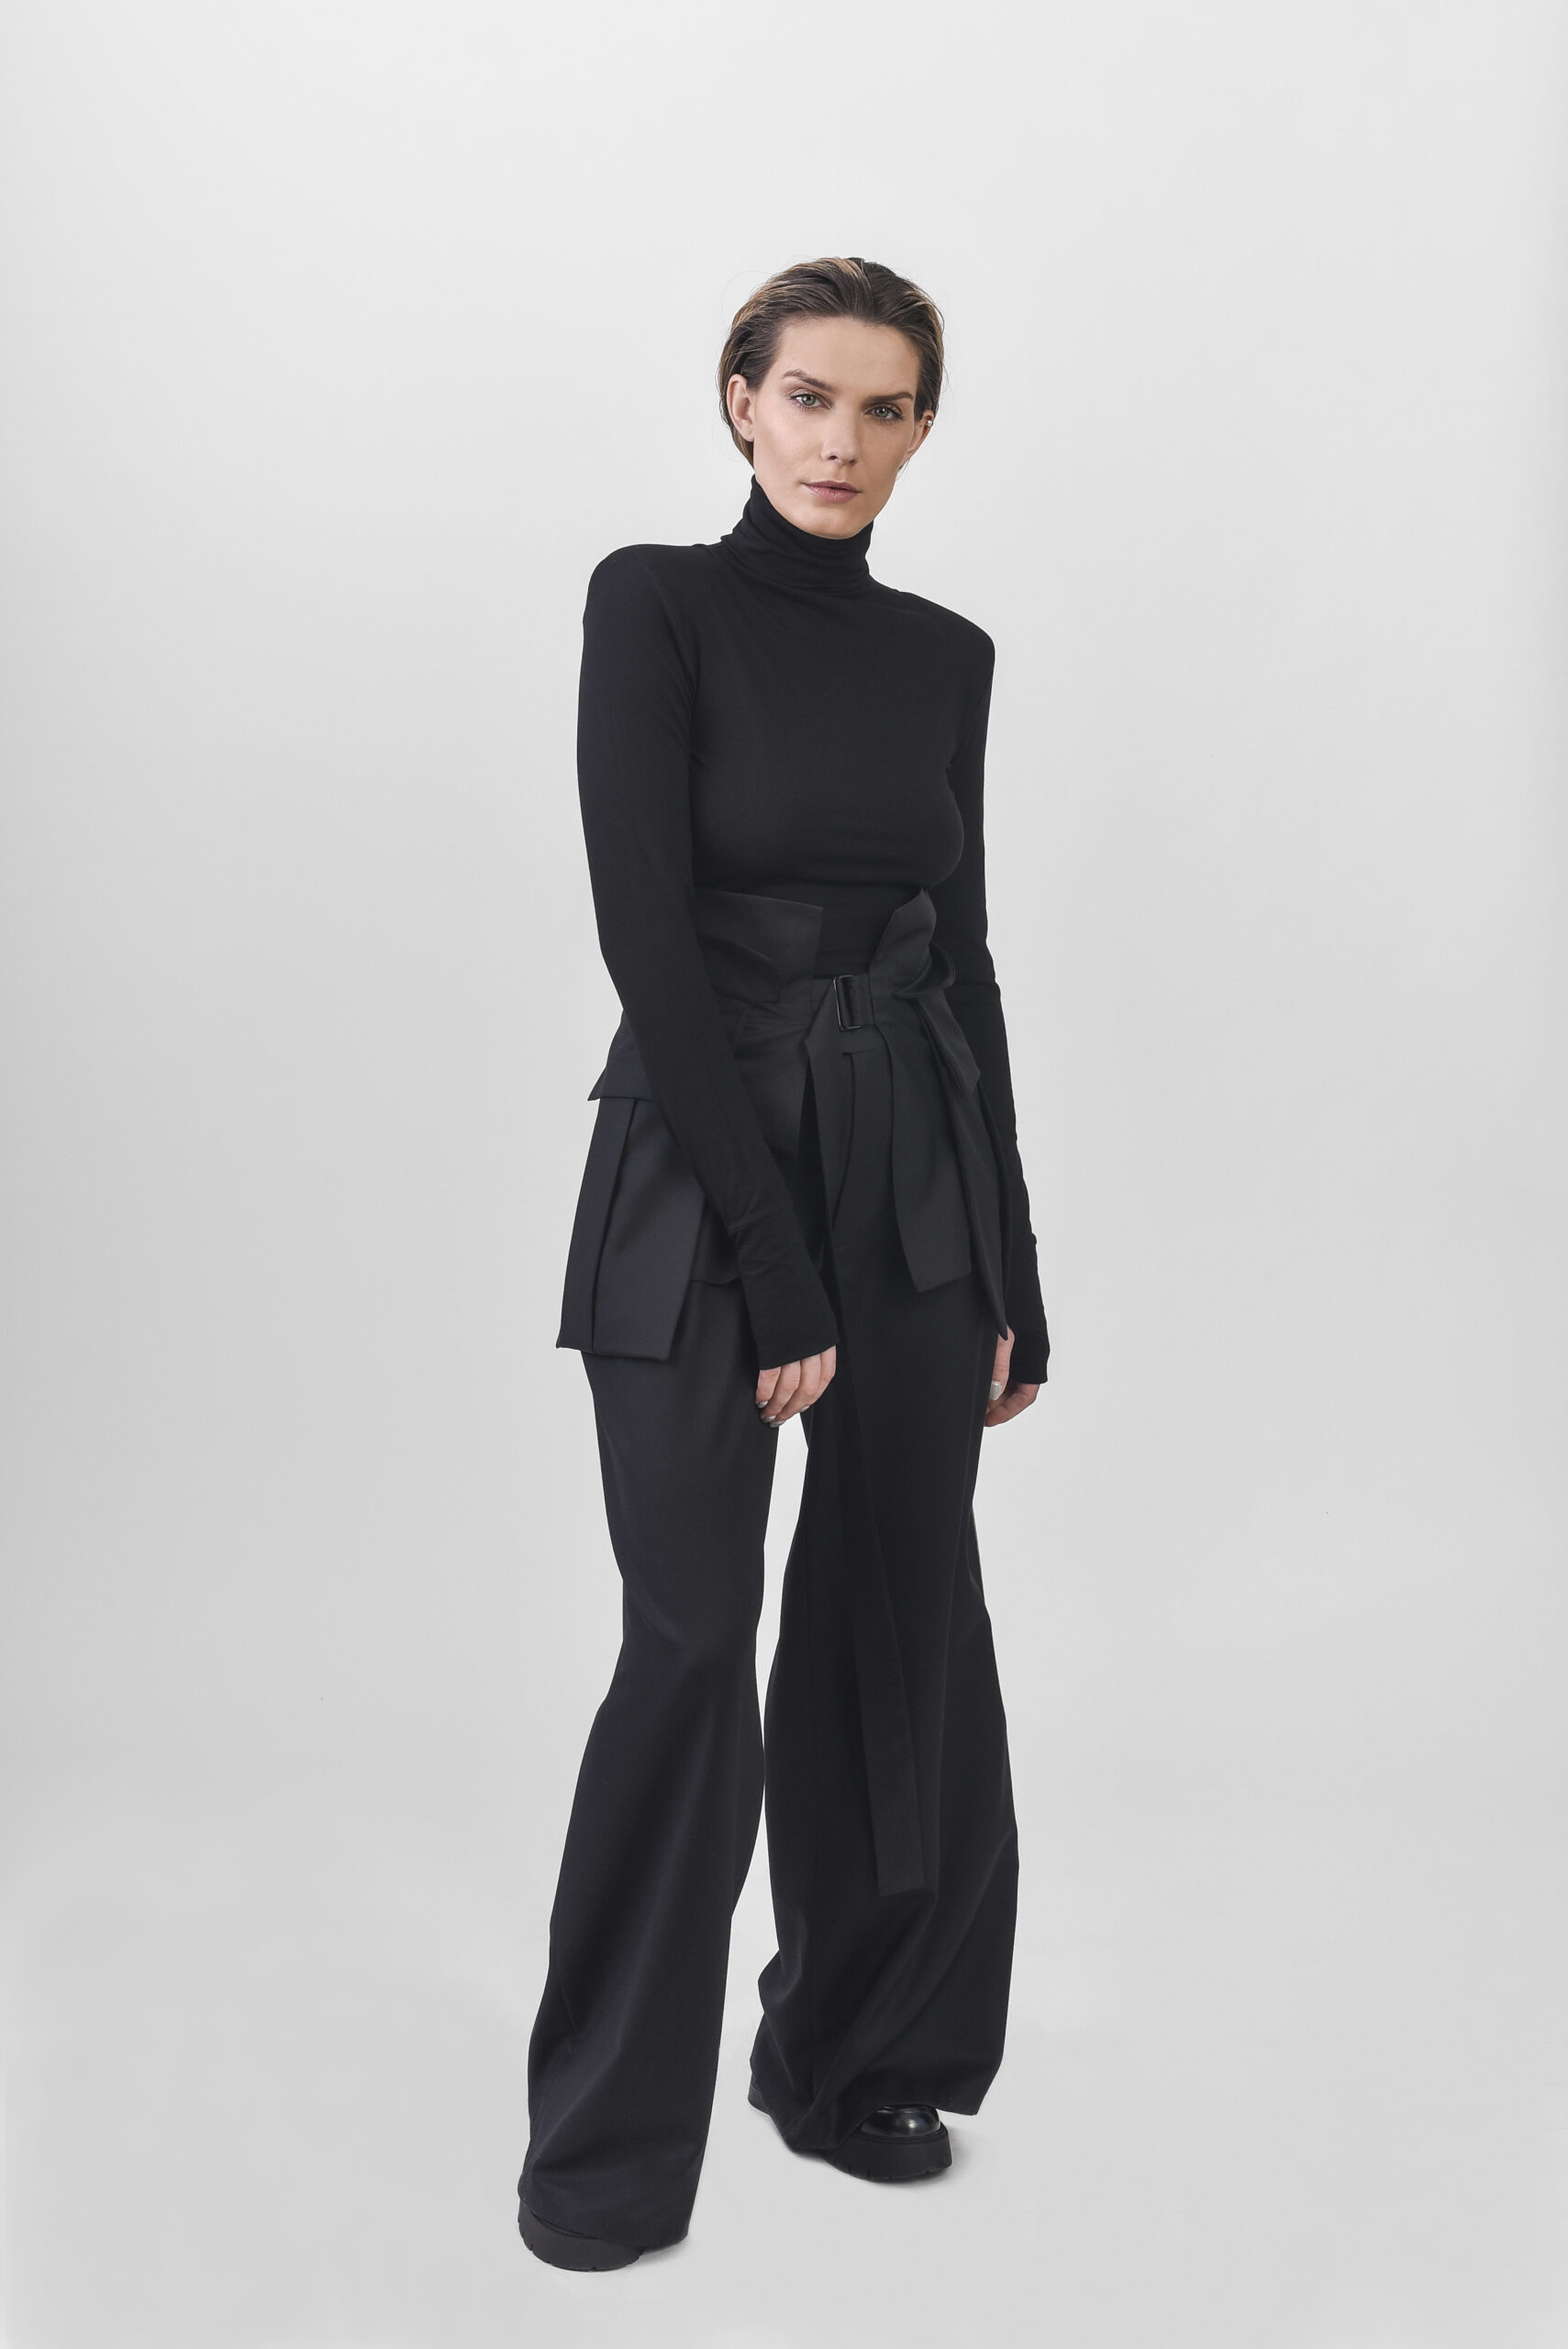 Wide leg trousers and waist belt with black turtleneck